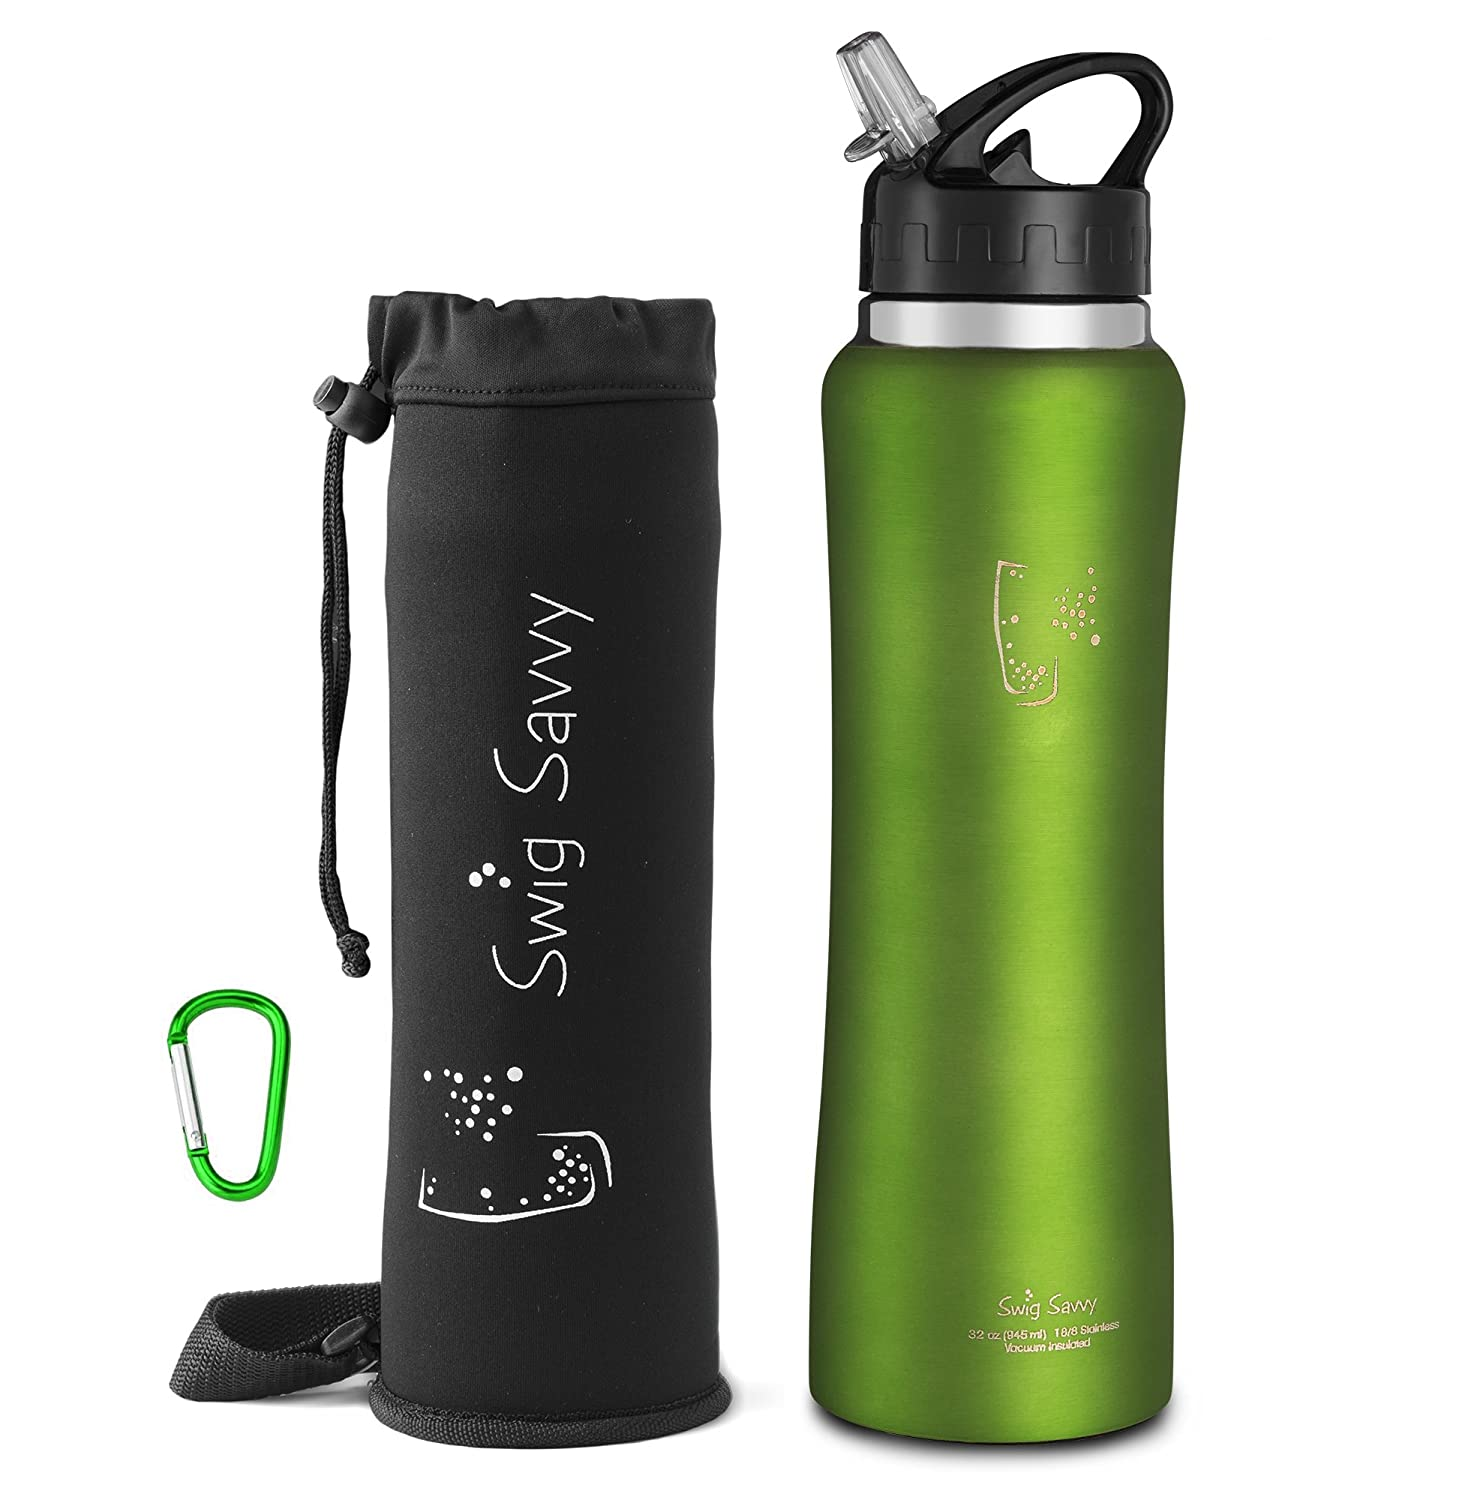 Sports Water Bottle Long Straw: Swig Savvy Stainless Steel Insulated Water Bottle With